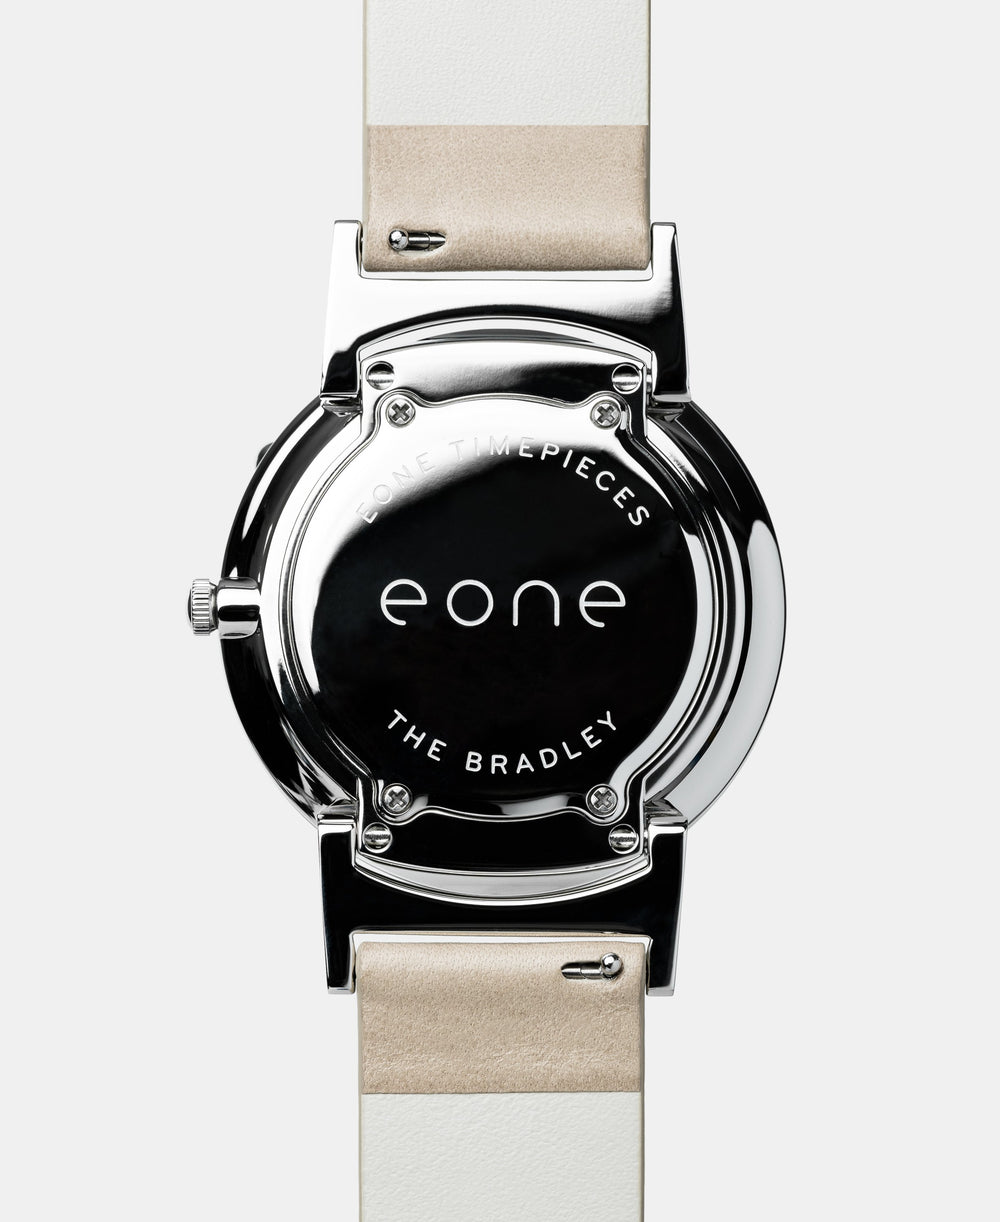 A photo of the back of the watch, showing the back plate engraved with the Eone logo.